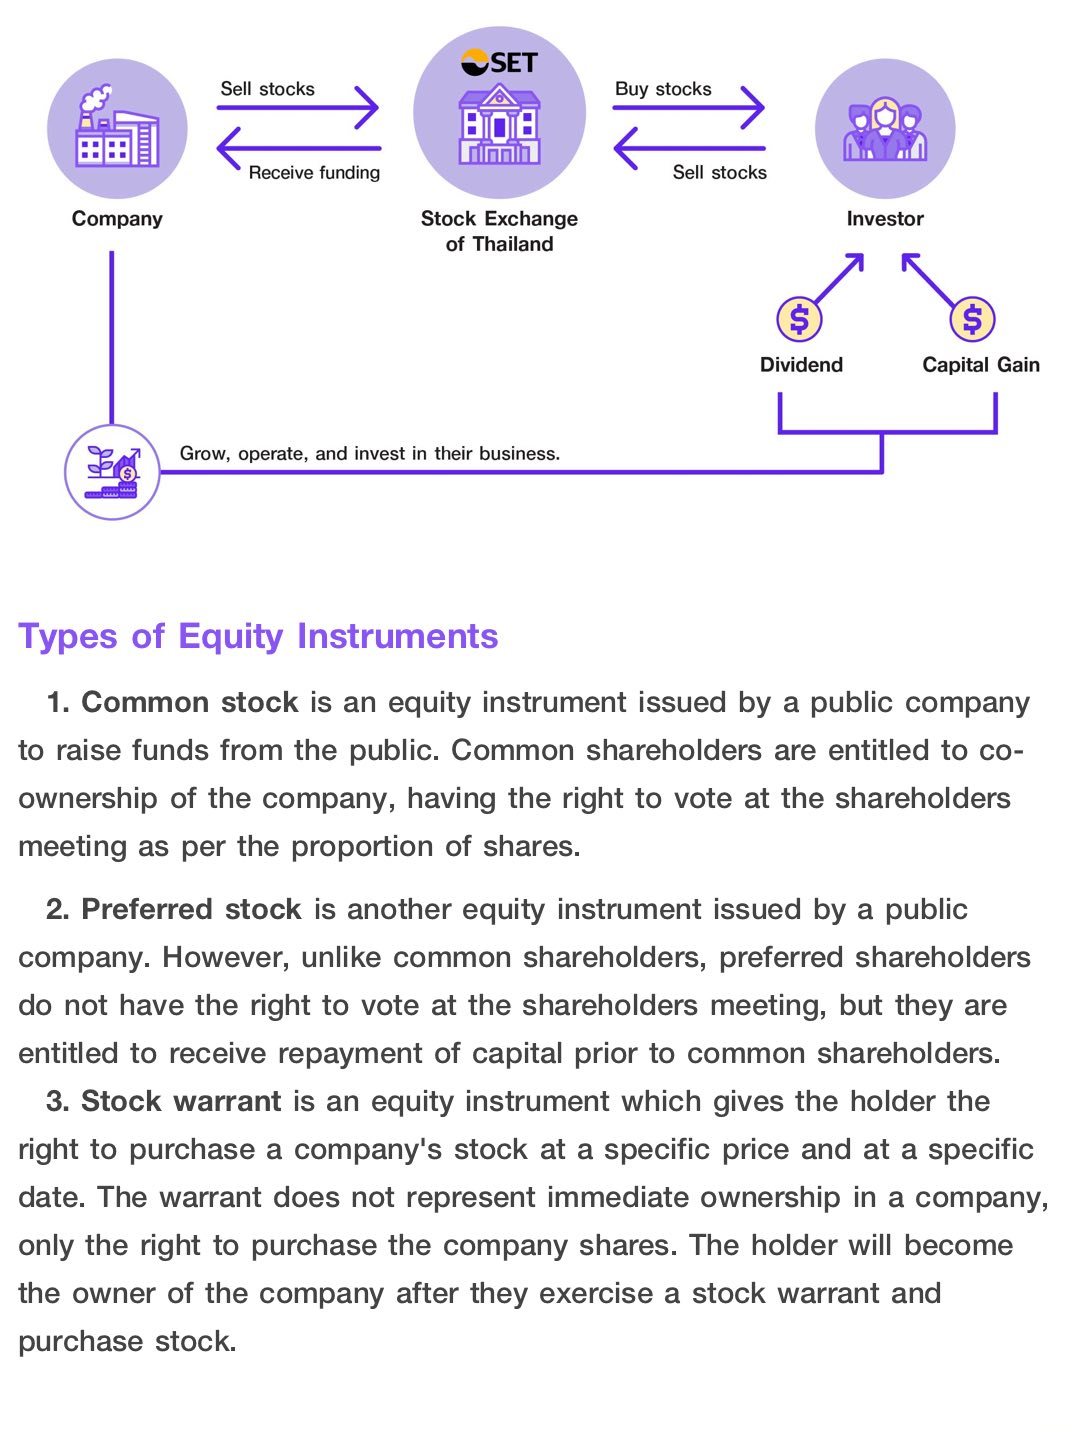 Types of Equity Instruments 1. Common stock 2. Preferred stock 3. Stock warrant